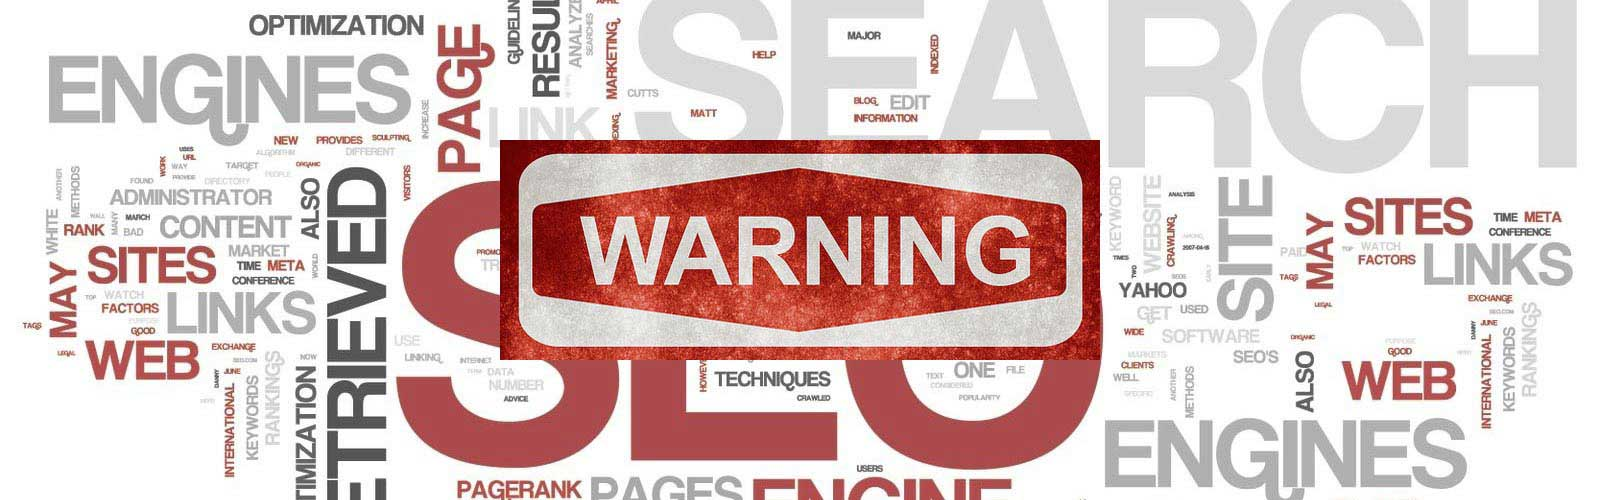 SEO Agencies Beware